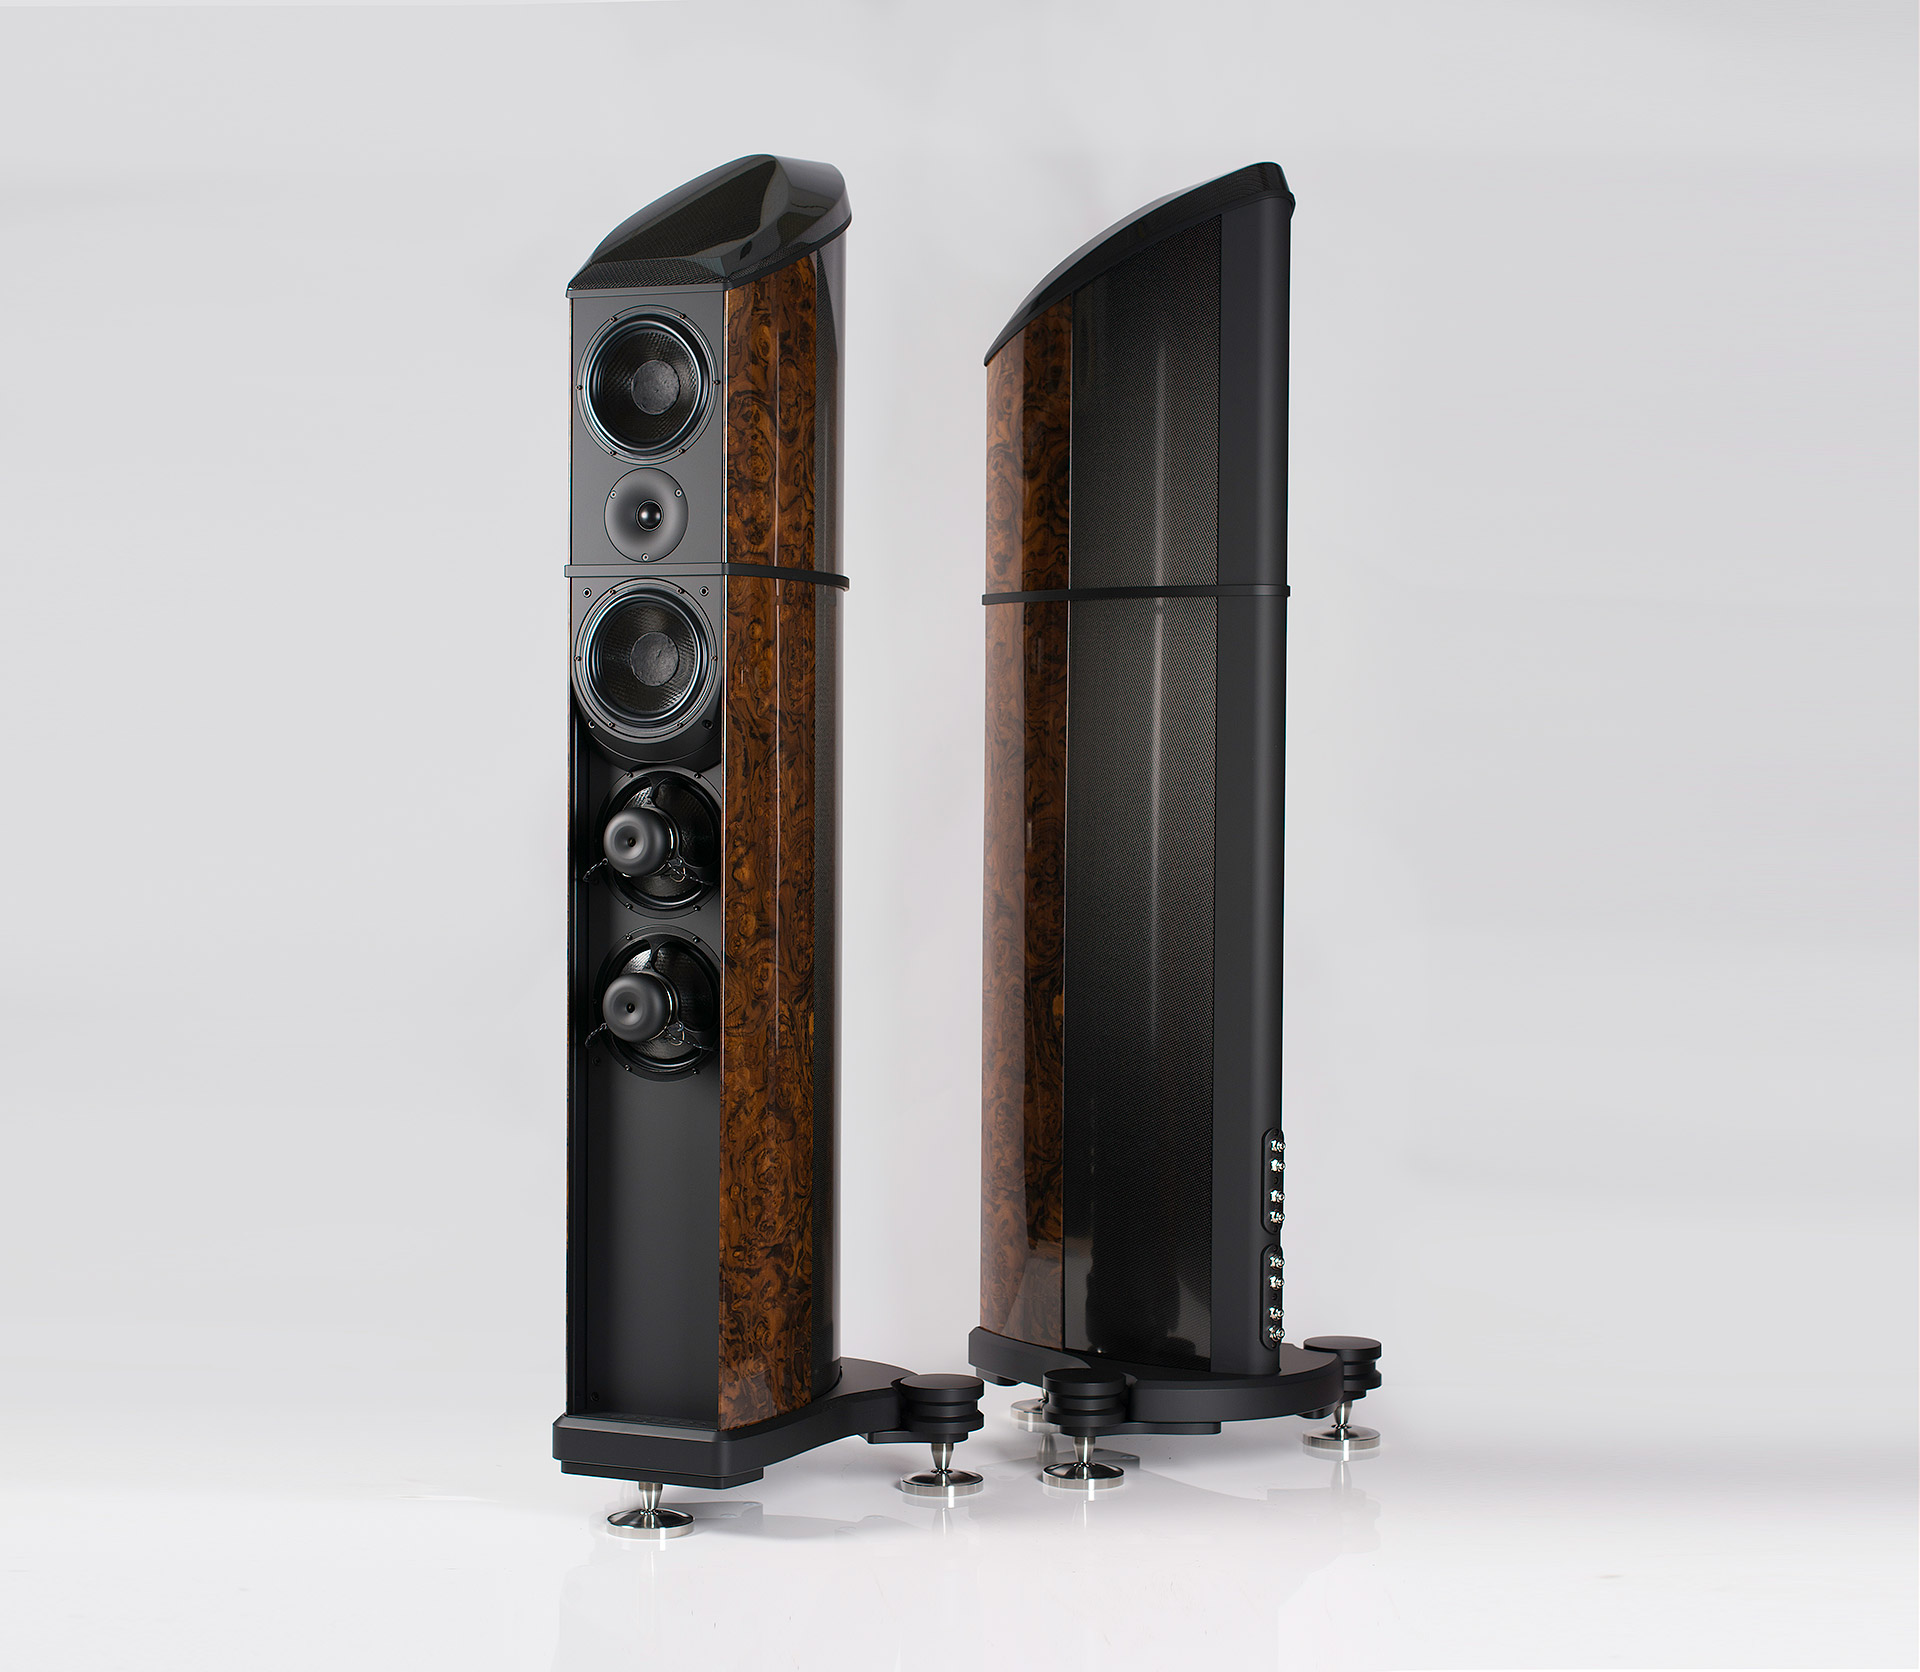 Roy Gregory - Audiobeat -Resolution - Floorstanding - Loudspeaker - Review - Carbon Fibre - Hifi - High End - British - Sound